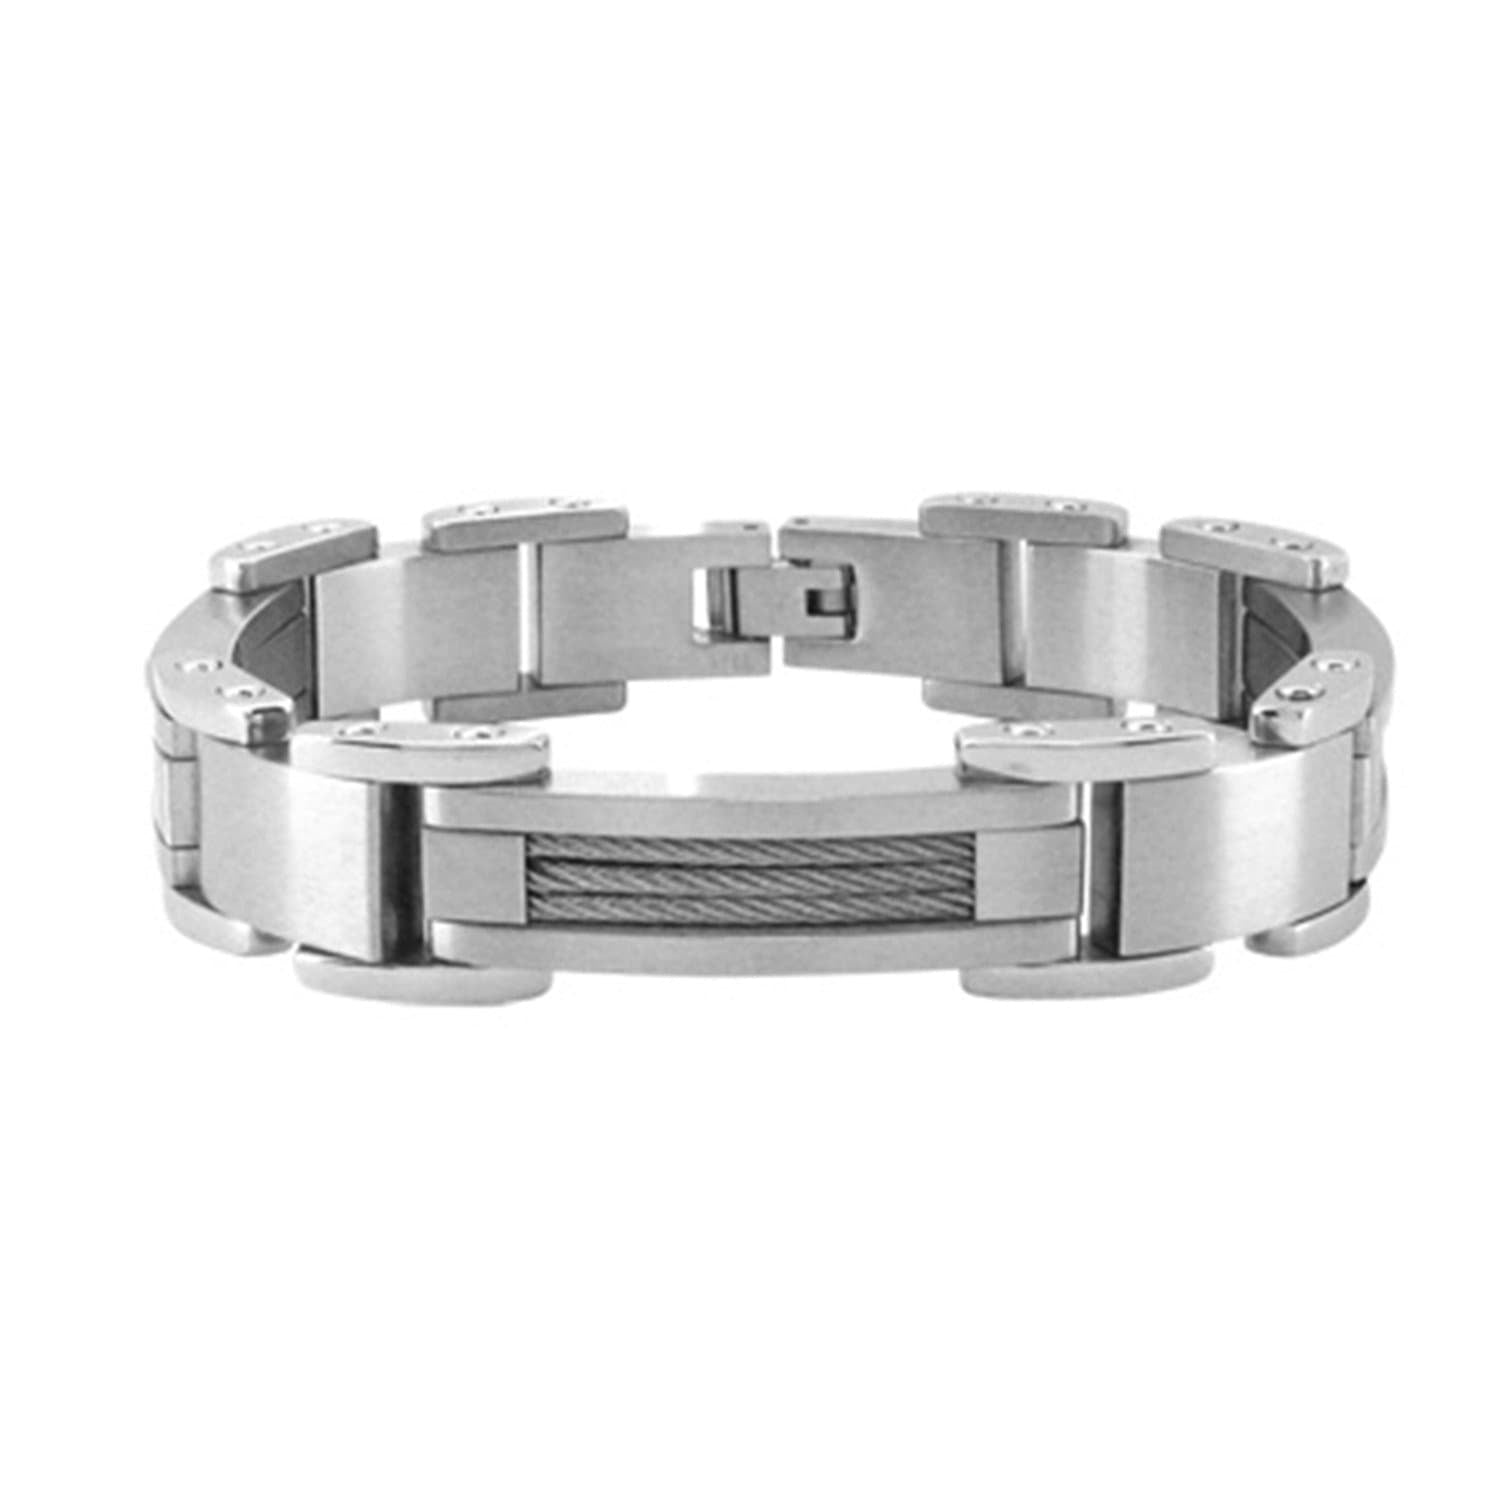 Silver Stainless Steel Matte & Polished Industrial Cable Bracelet - Inox Jewelry India